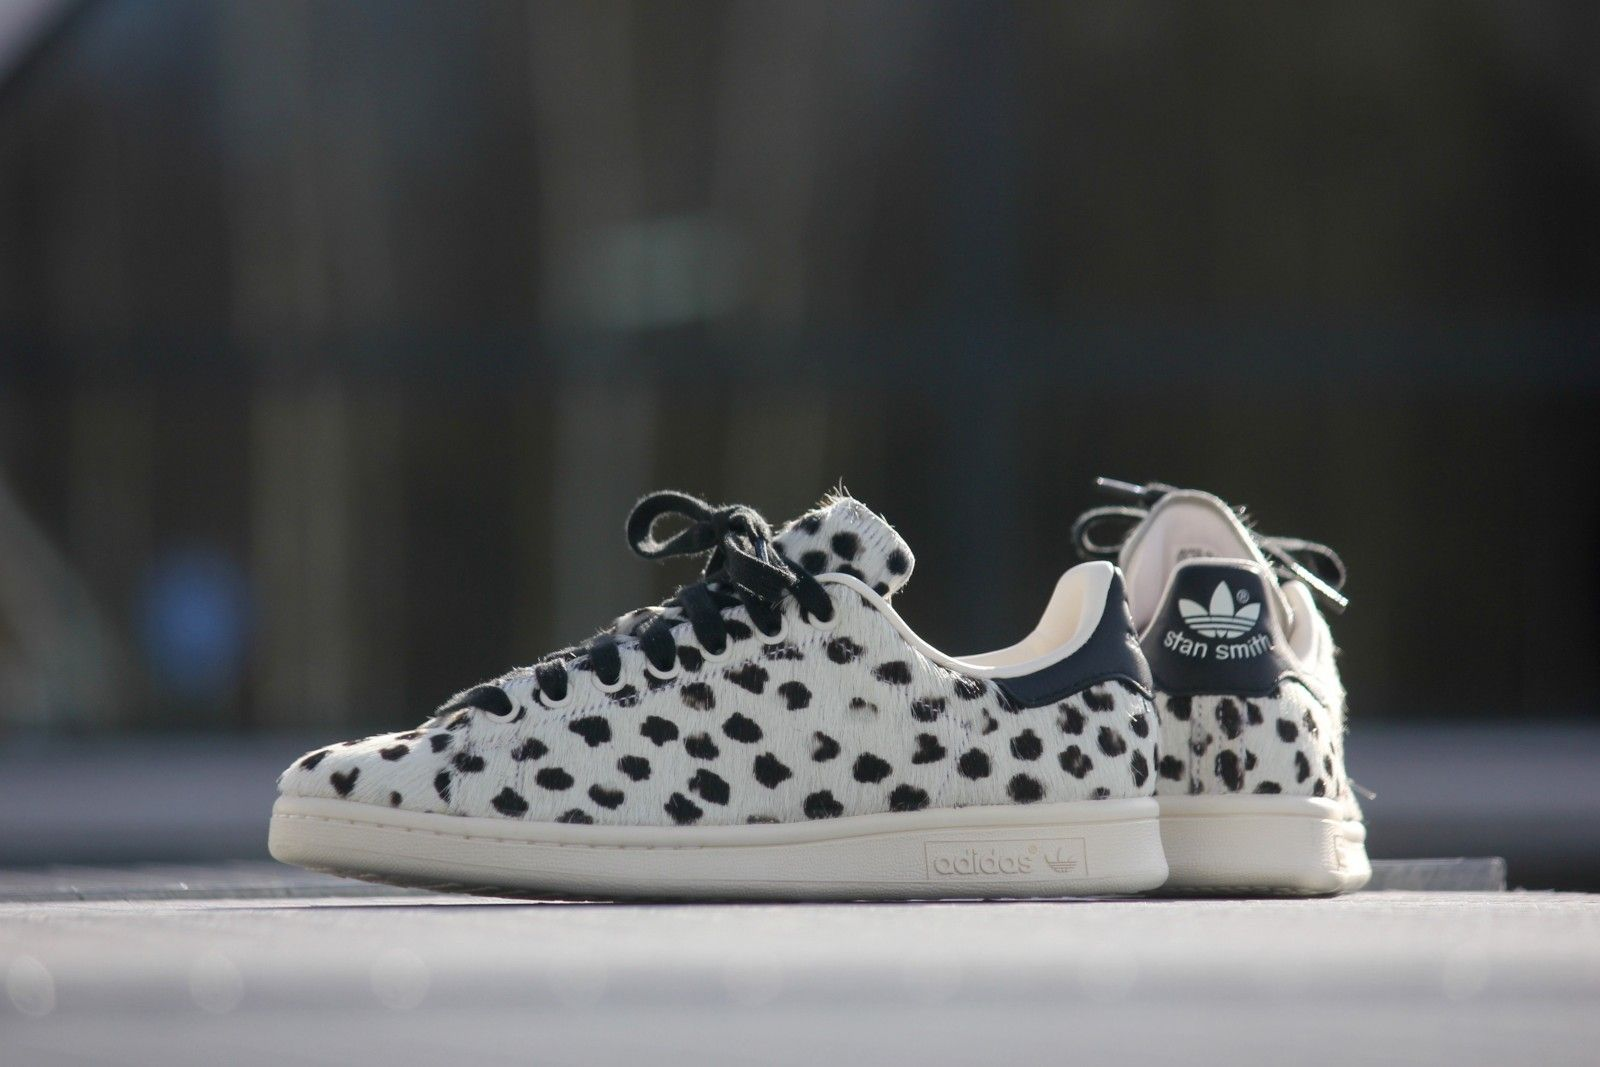 Adidas Stan Smith White Leopard Print - S75117 | Gekke ...